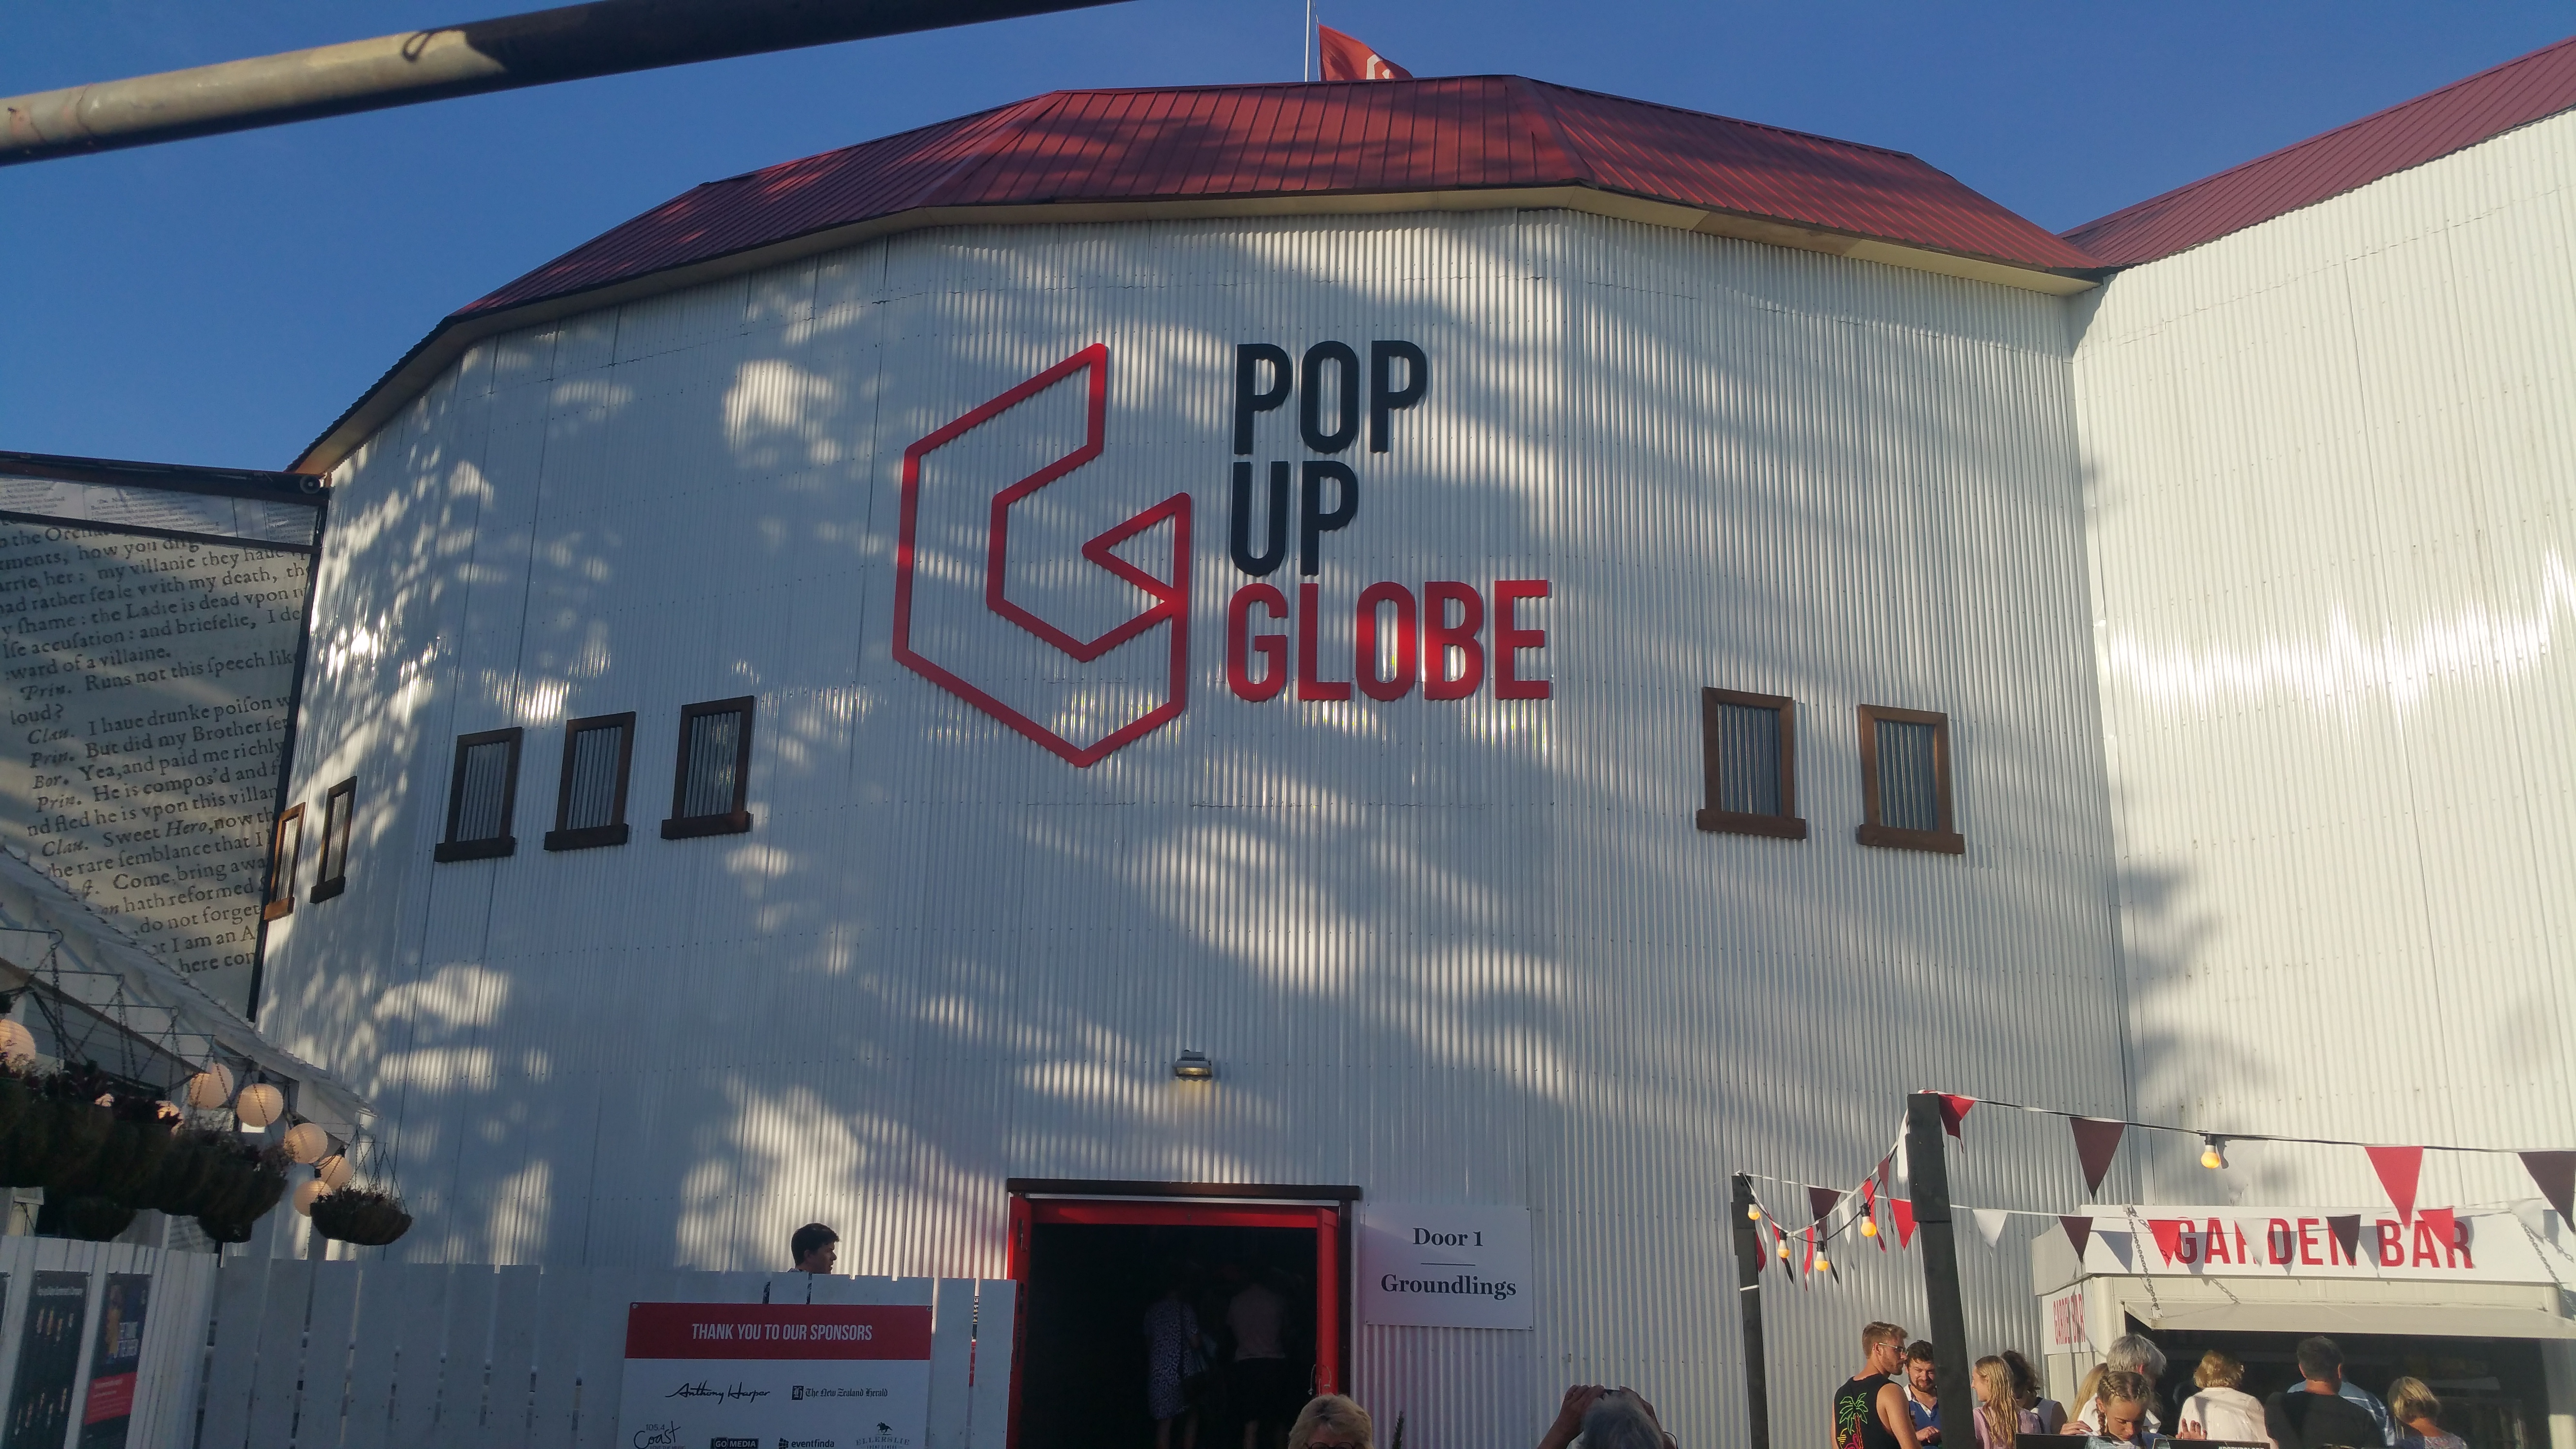 The Pop-Up Globe – a Must-see in Auckland and/or Sydney